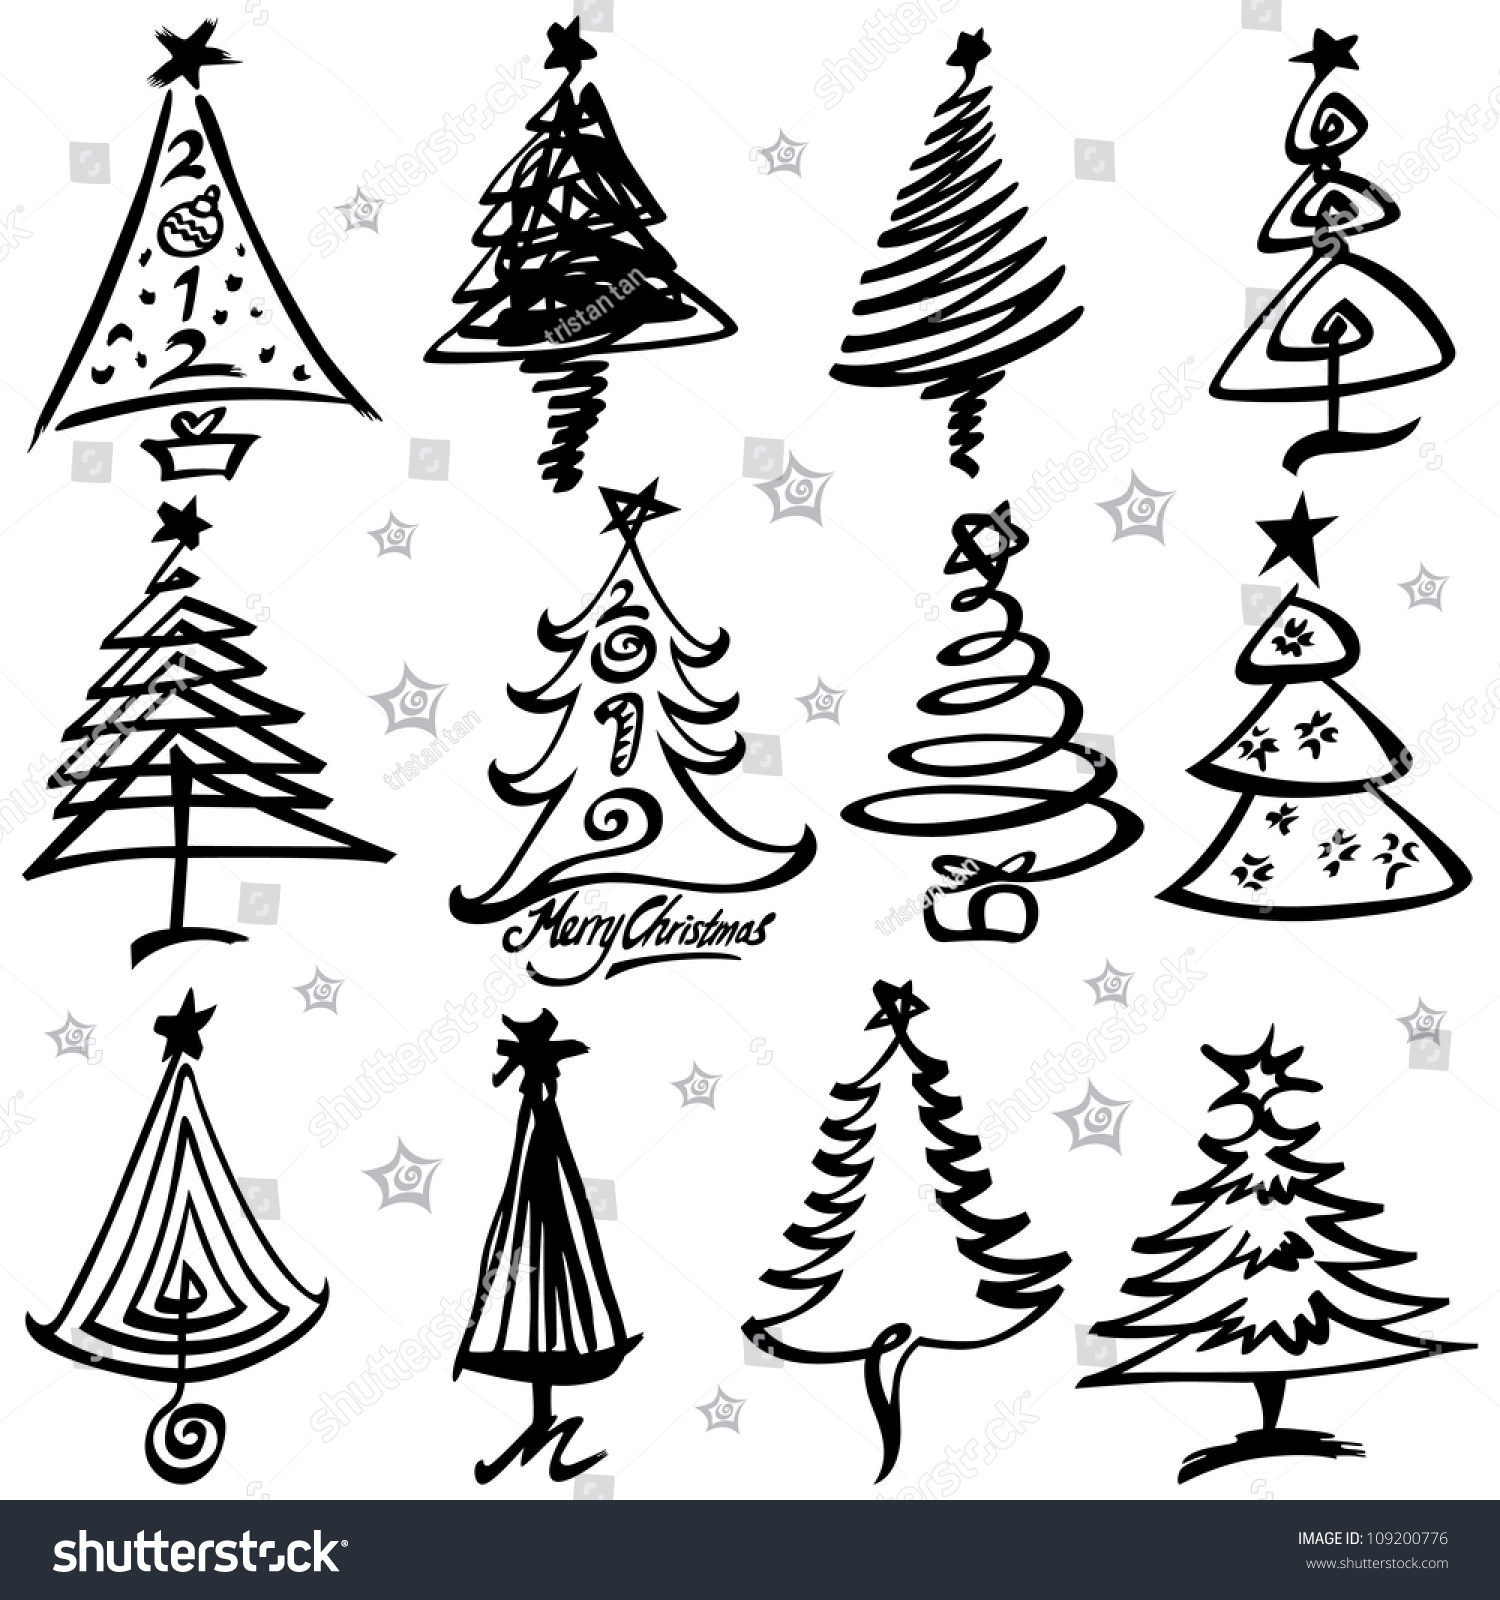 vector illustration of christmas tree design set - Christmas Tree Designs